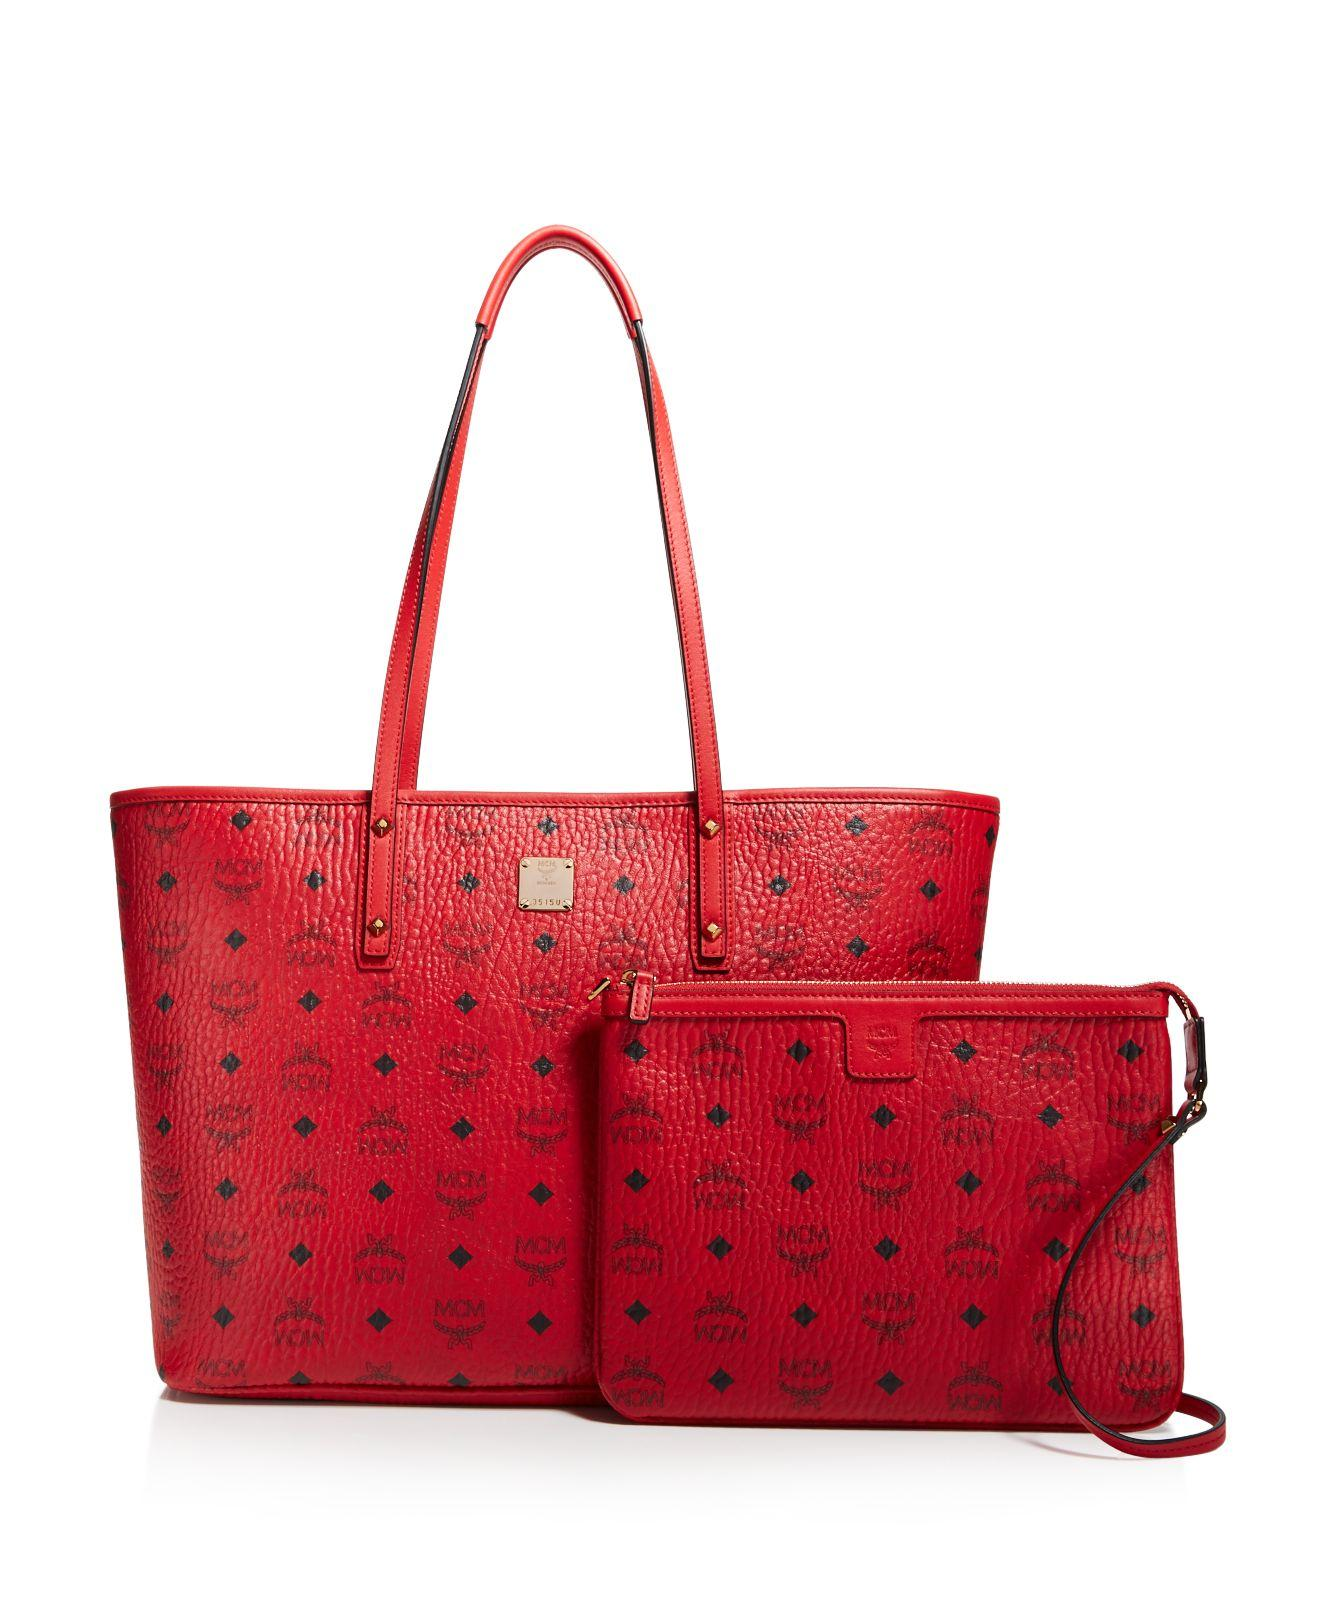 mcm anya logo zip medium shopper tote in red lyst. Black Bedroom Furniture Sets. Home Design Ideas